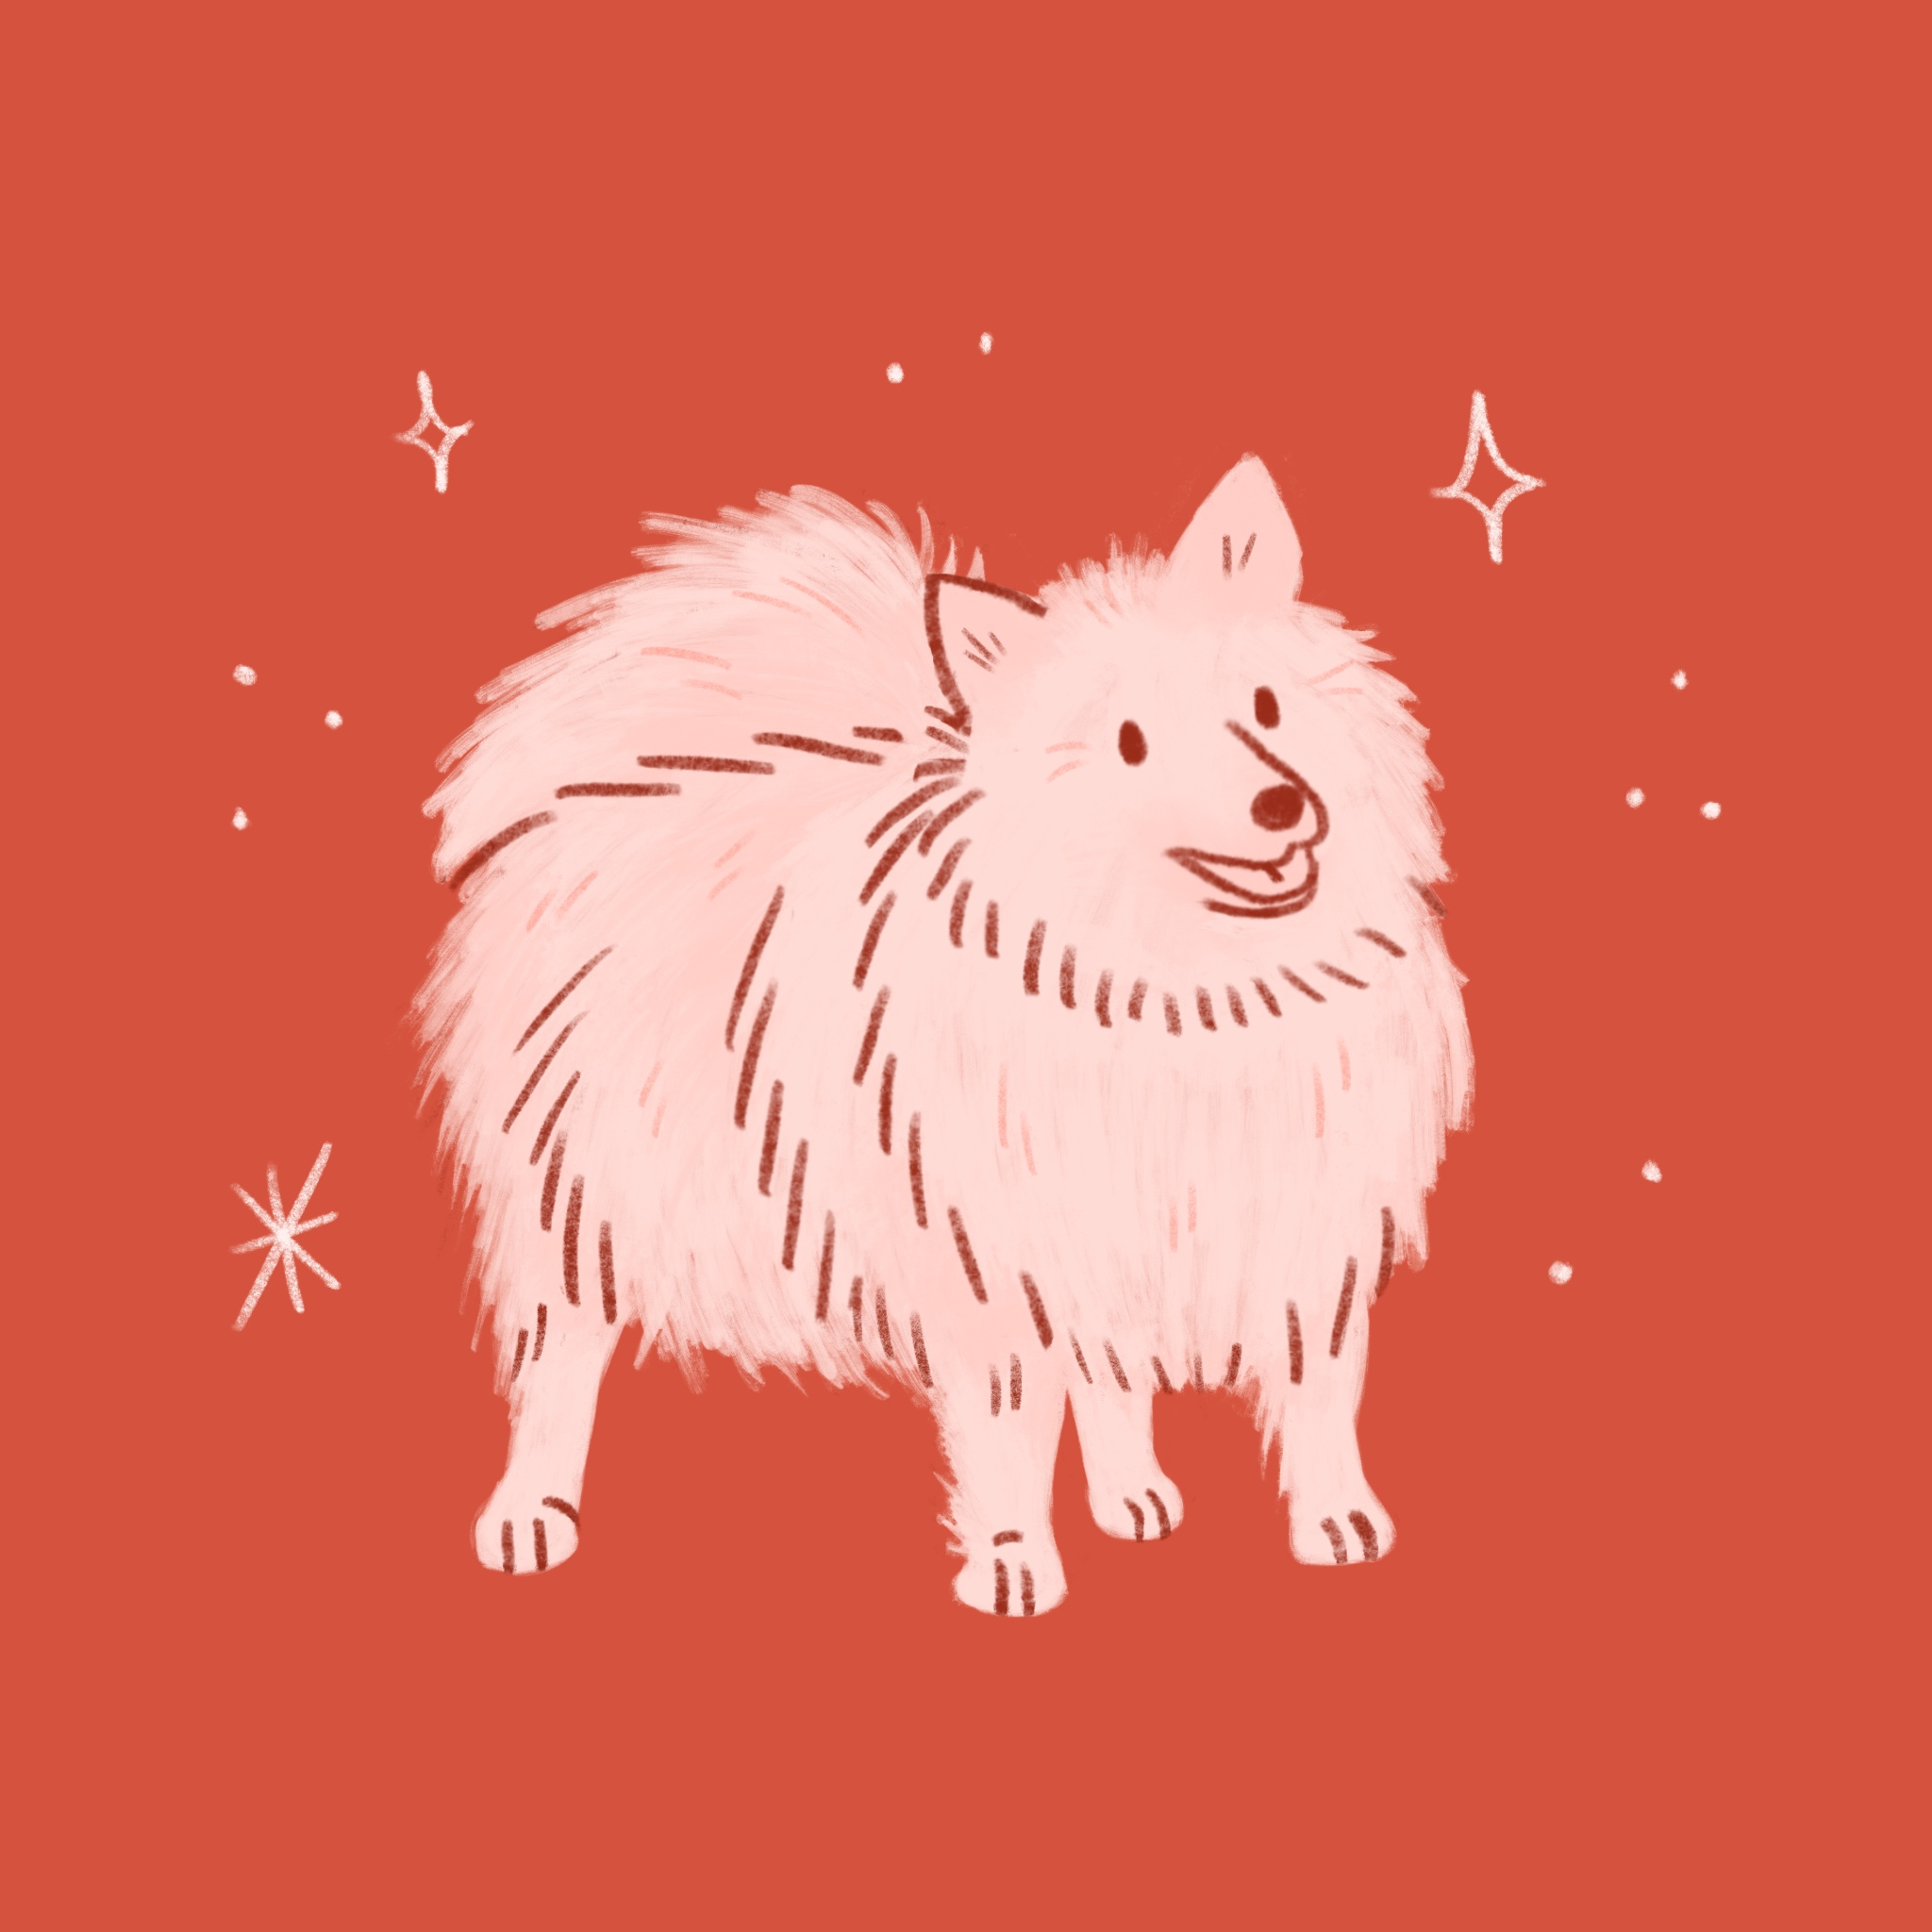 An illustration of a Keeshond dog